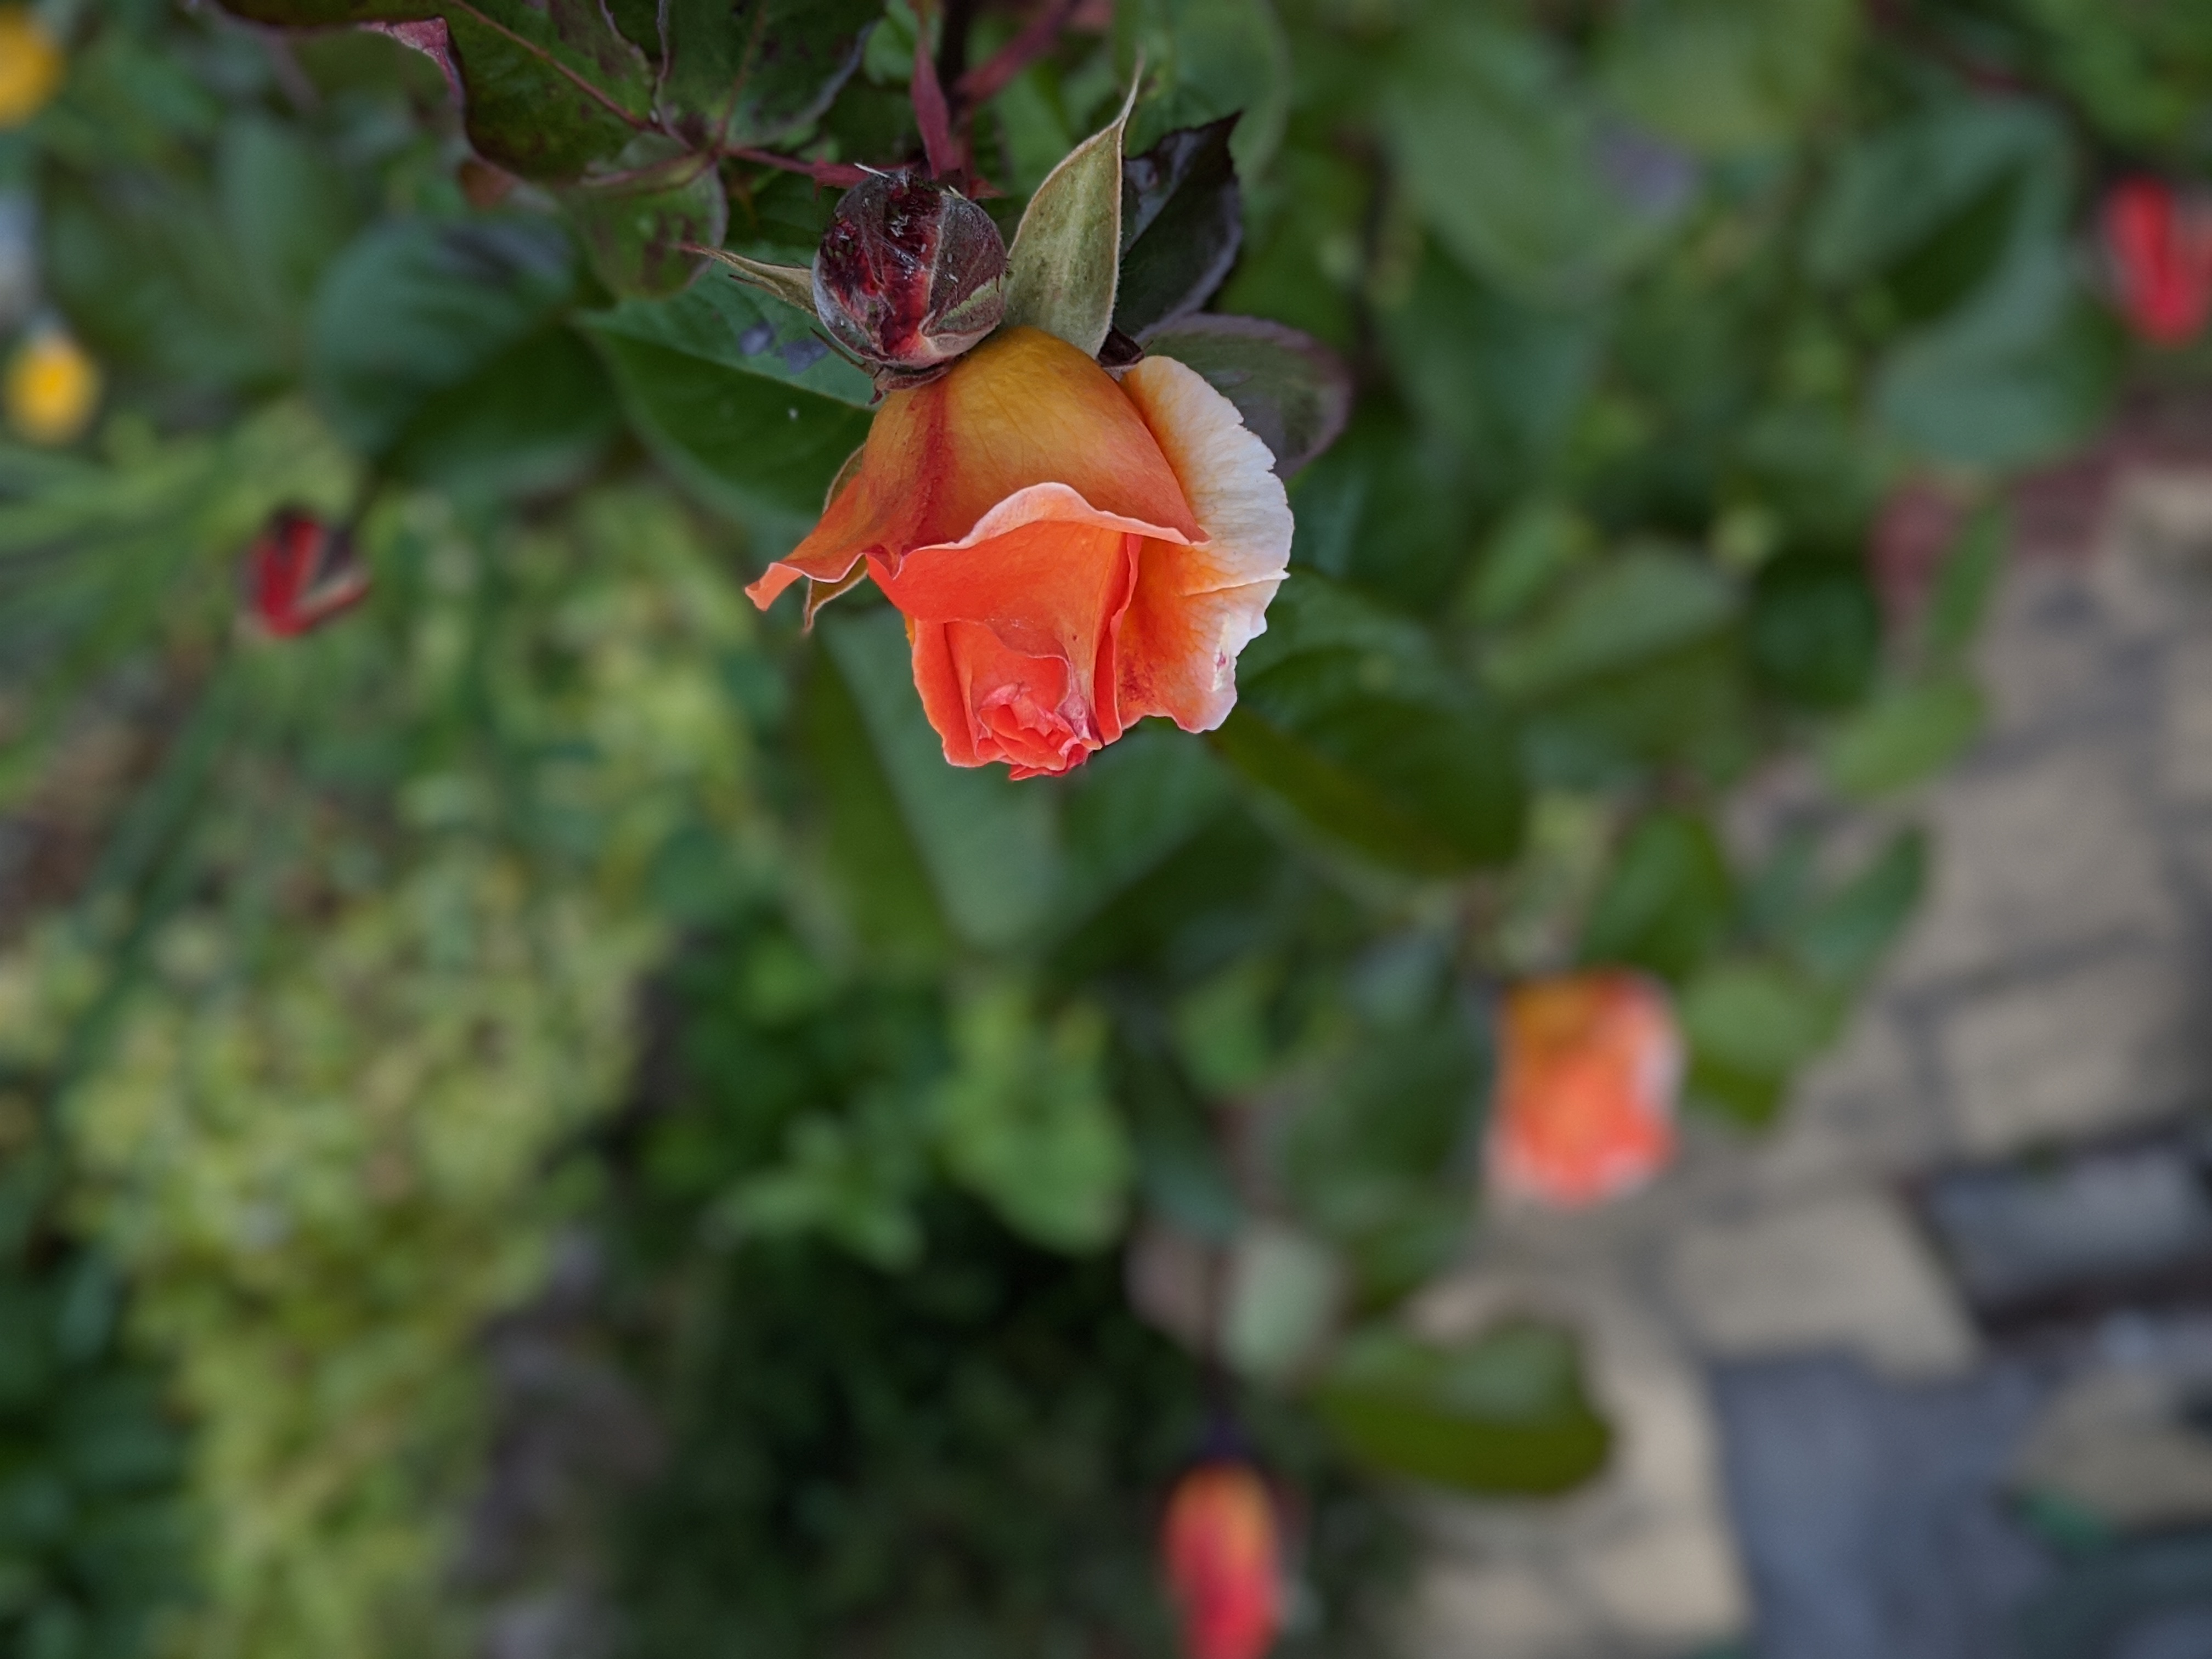 Orange rose bud, more red and orange roses emerging in the background.